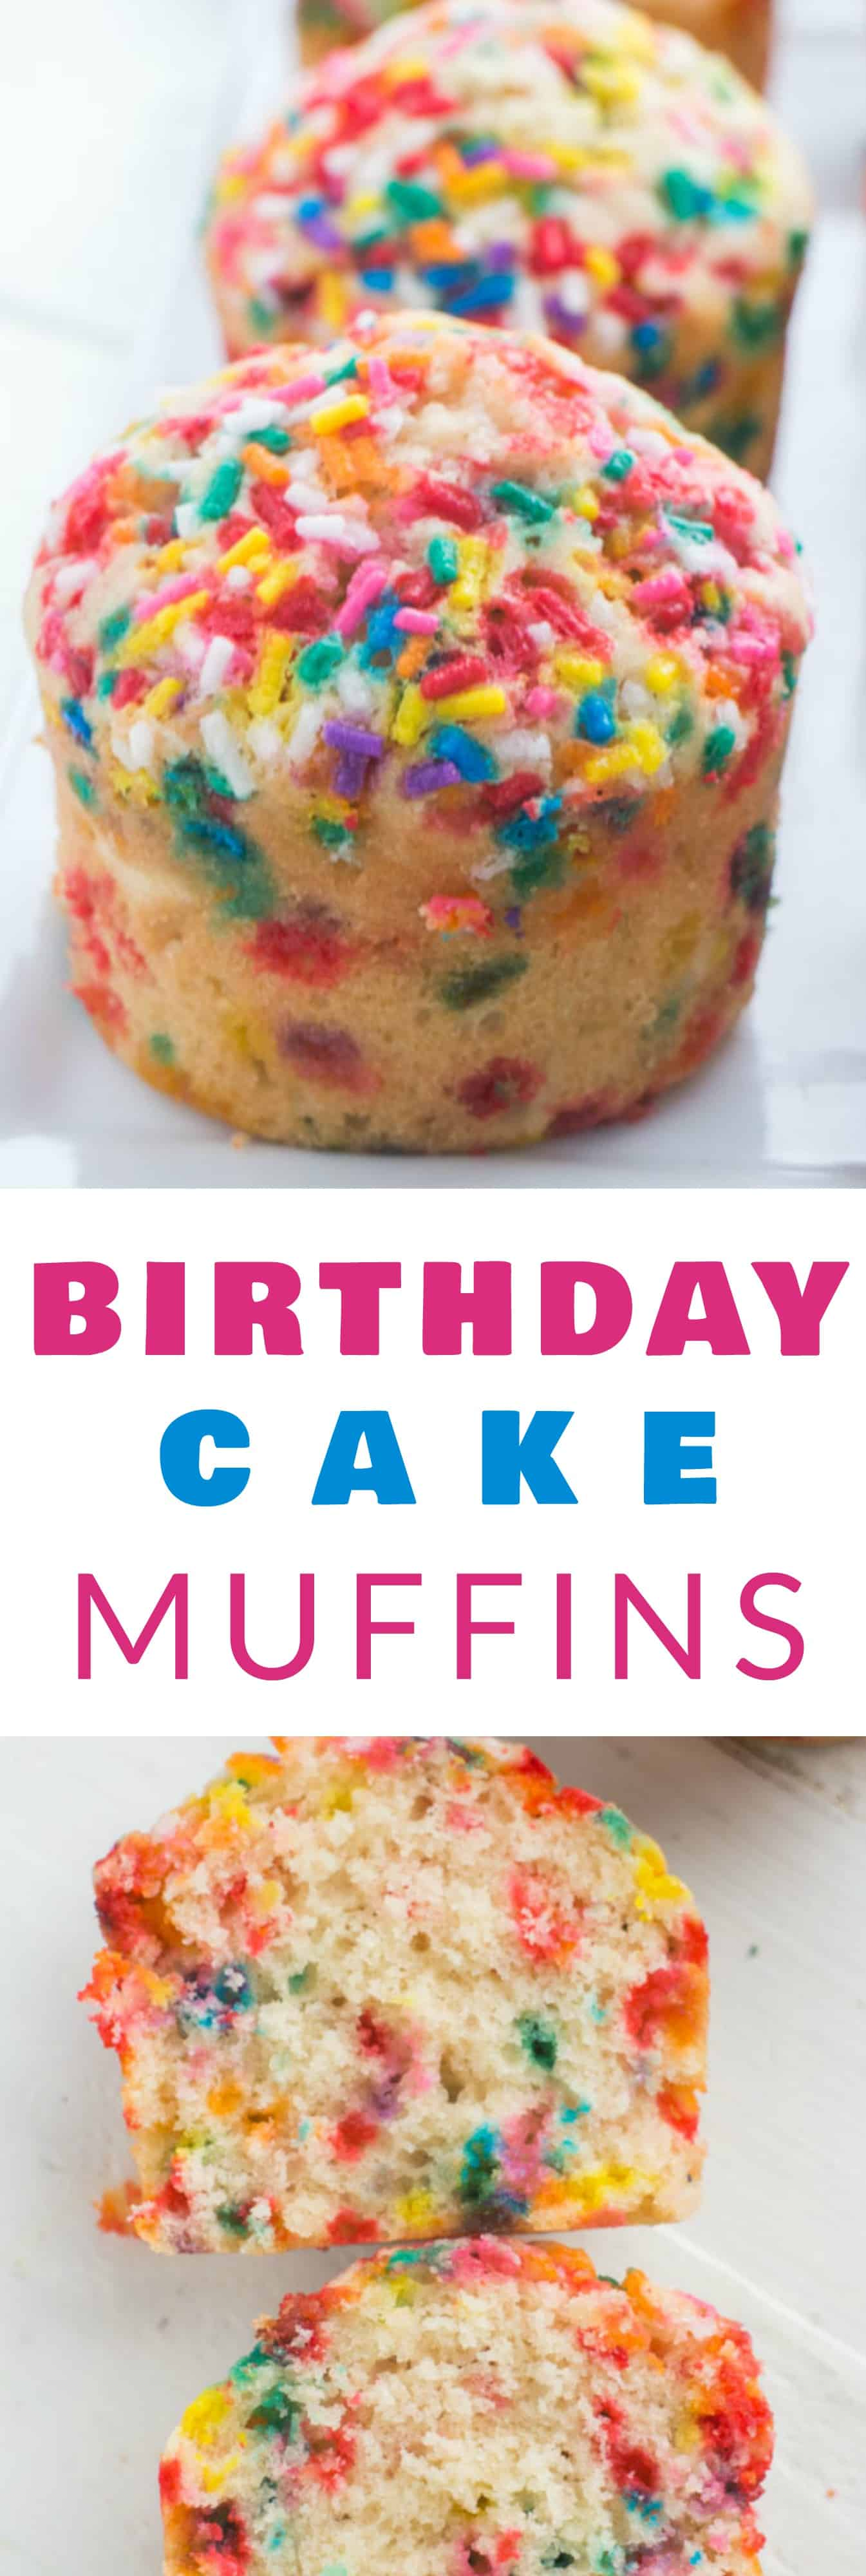 Fluffy, SPRINKLE BIRTHDAY CAKE Muffins that taste just like birthday cake! This is a easy rainbow muffins recipe that is pretty and perfect for happy birthday parties and desserts! Kids LOVE these FUN muffins!